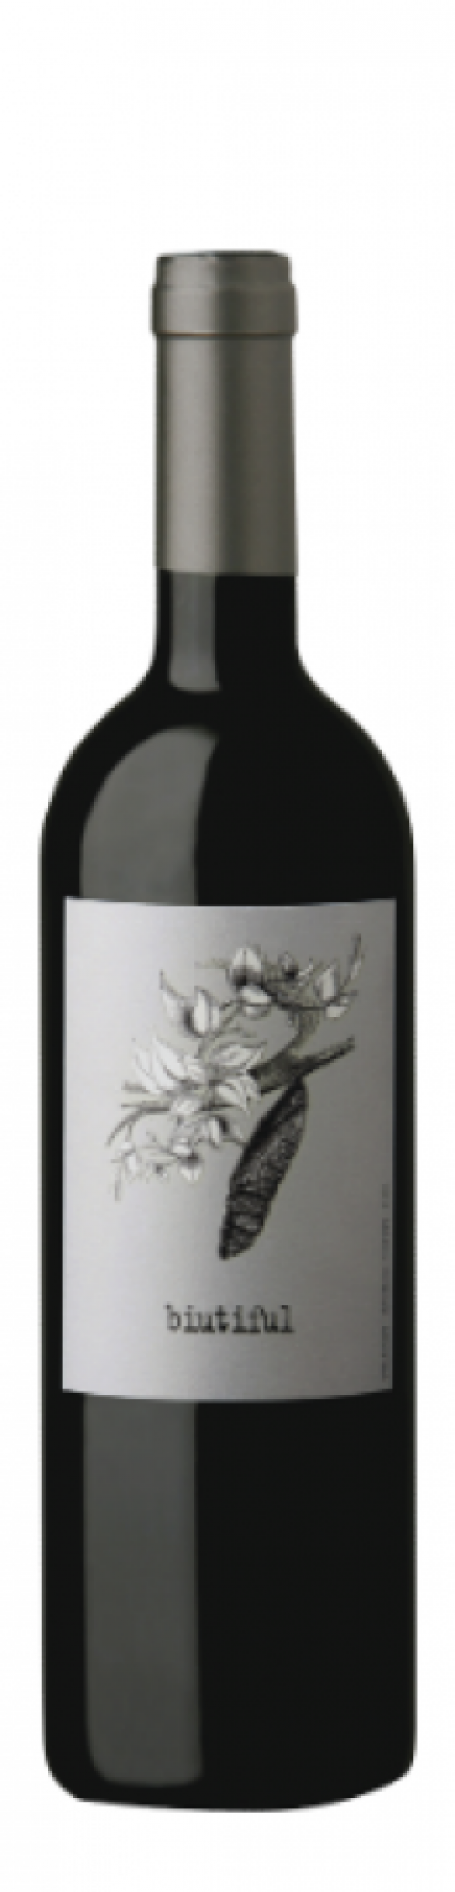 Maal Wines Biutiful Malbec 2017 – Altamira Single Vineyard